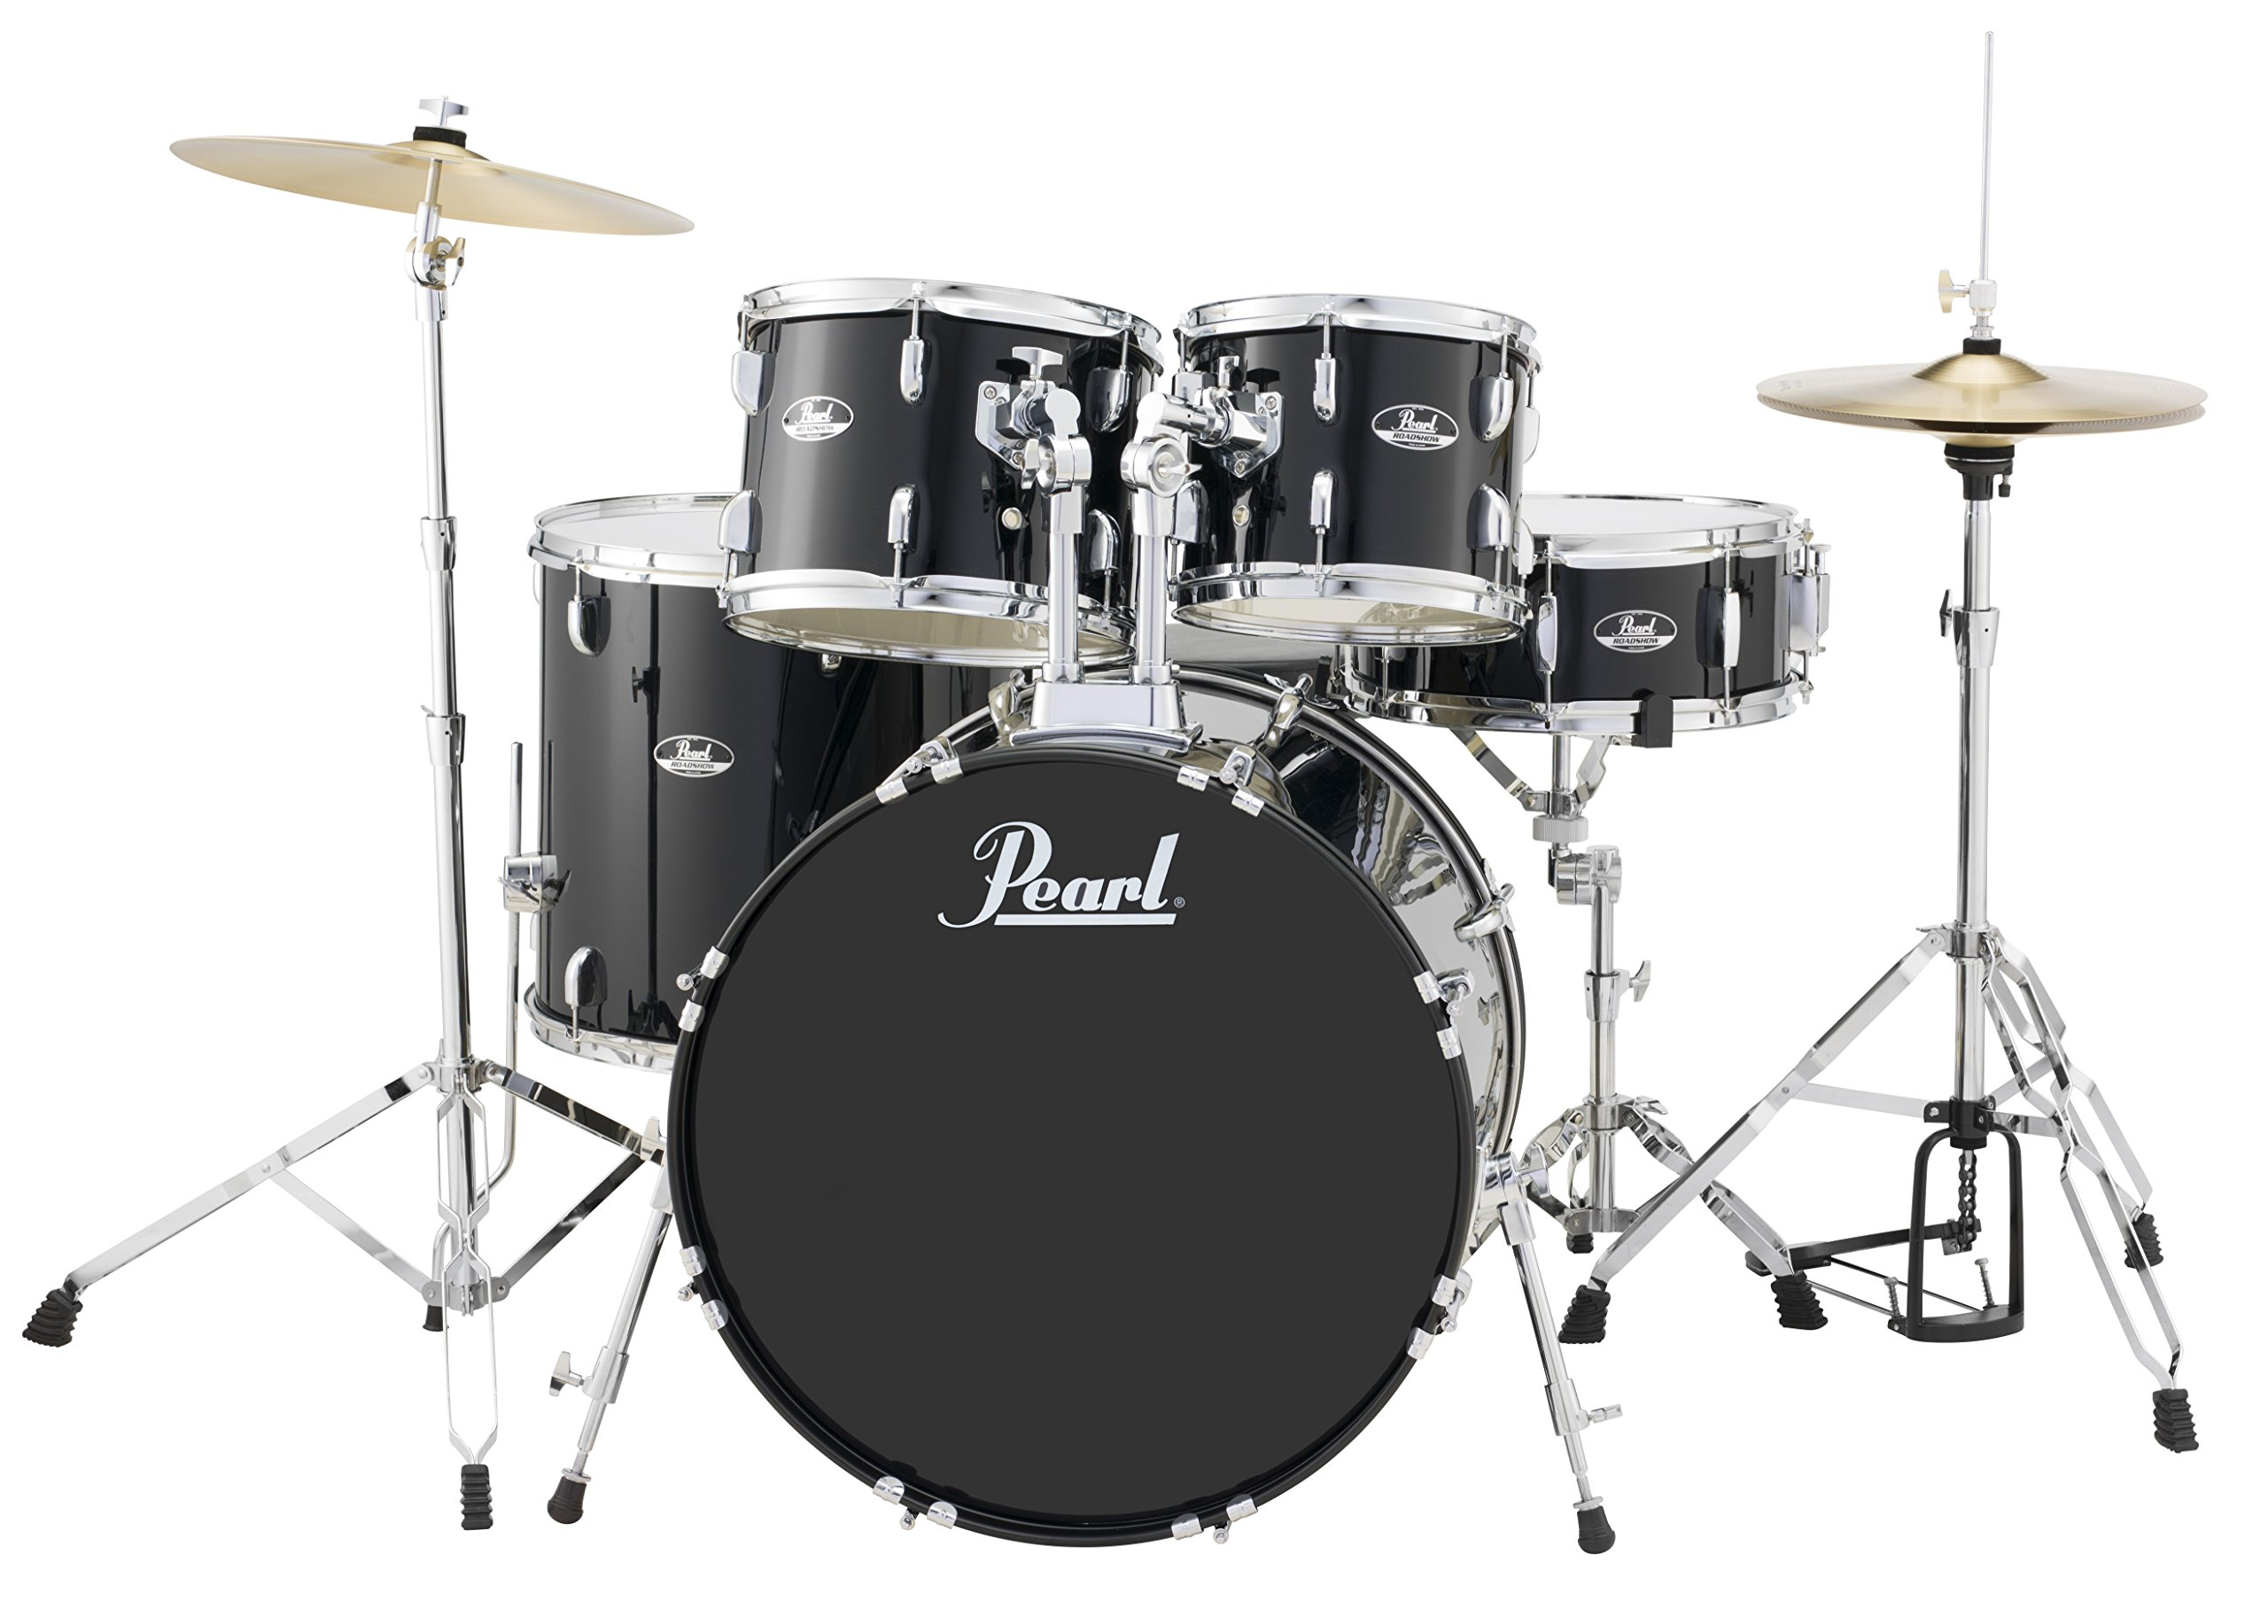 Pearl RS525SCC31 Roadshow 5-Piece Drum Set, Jet Black by Pearl